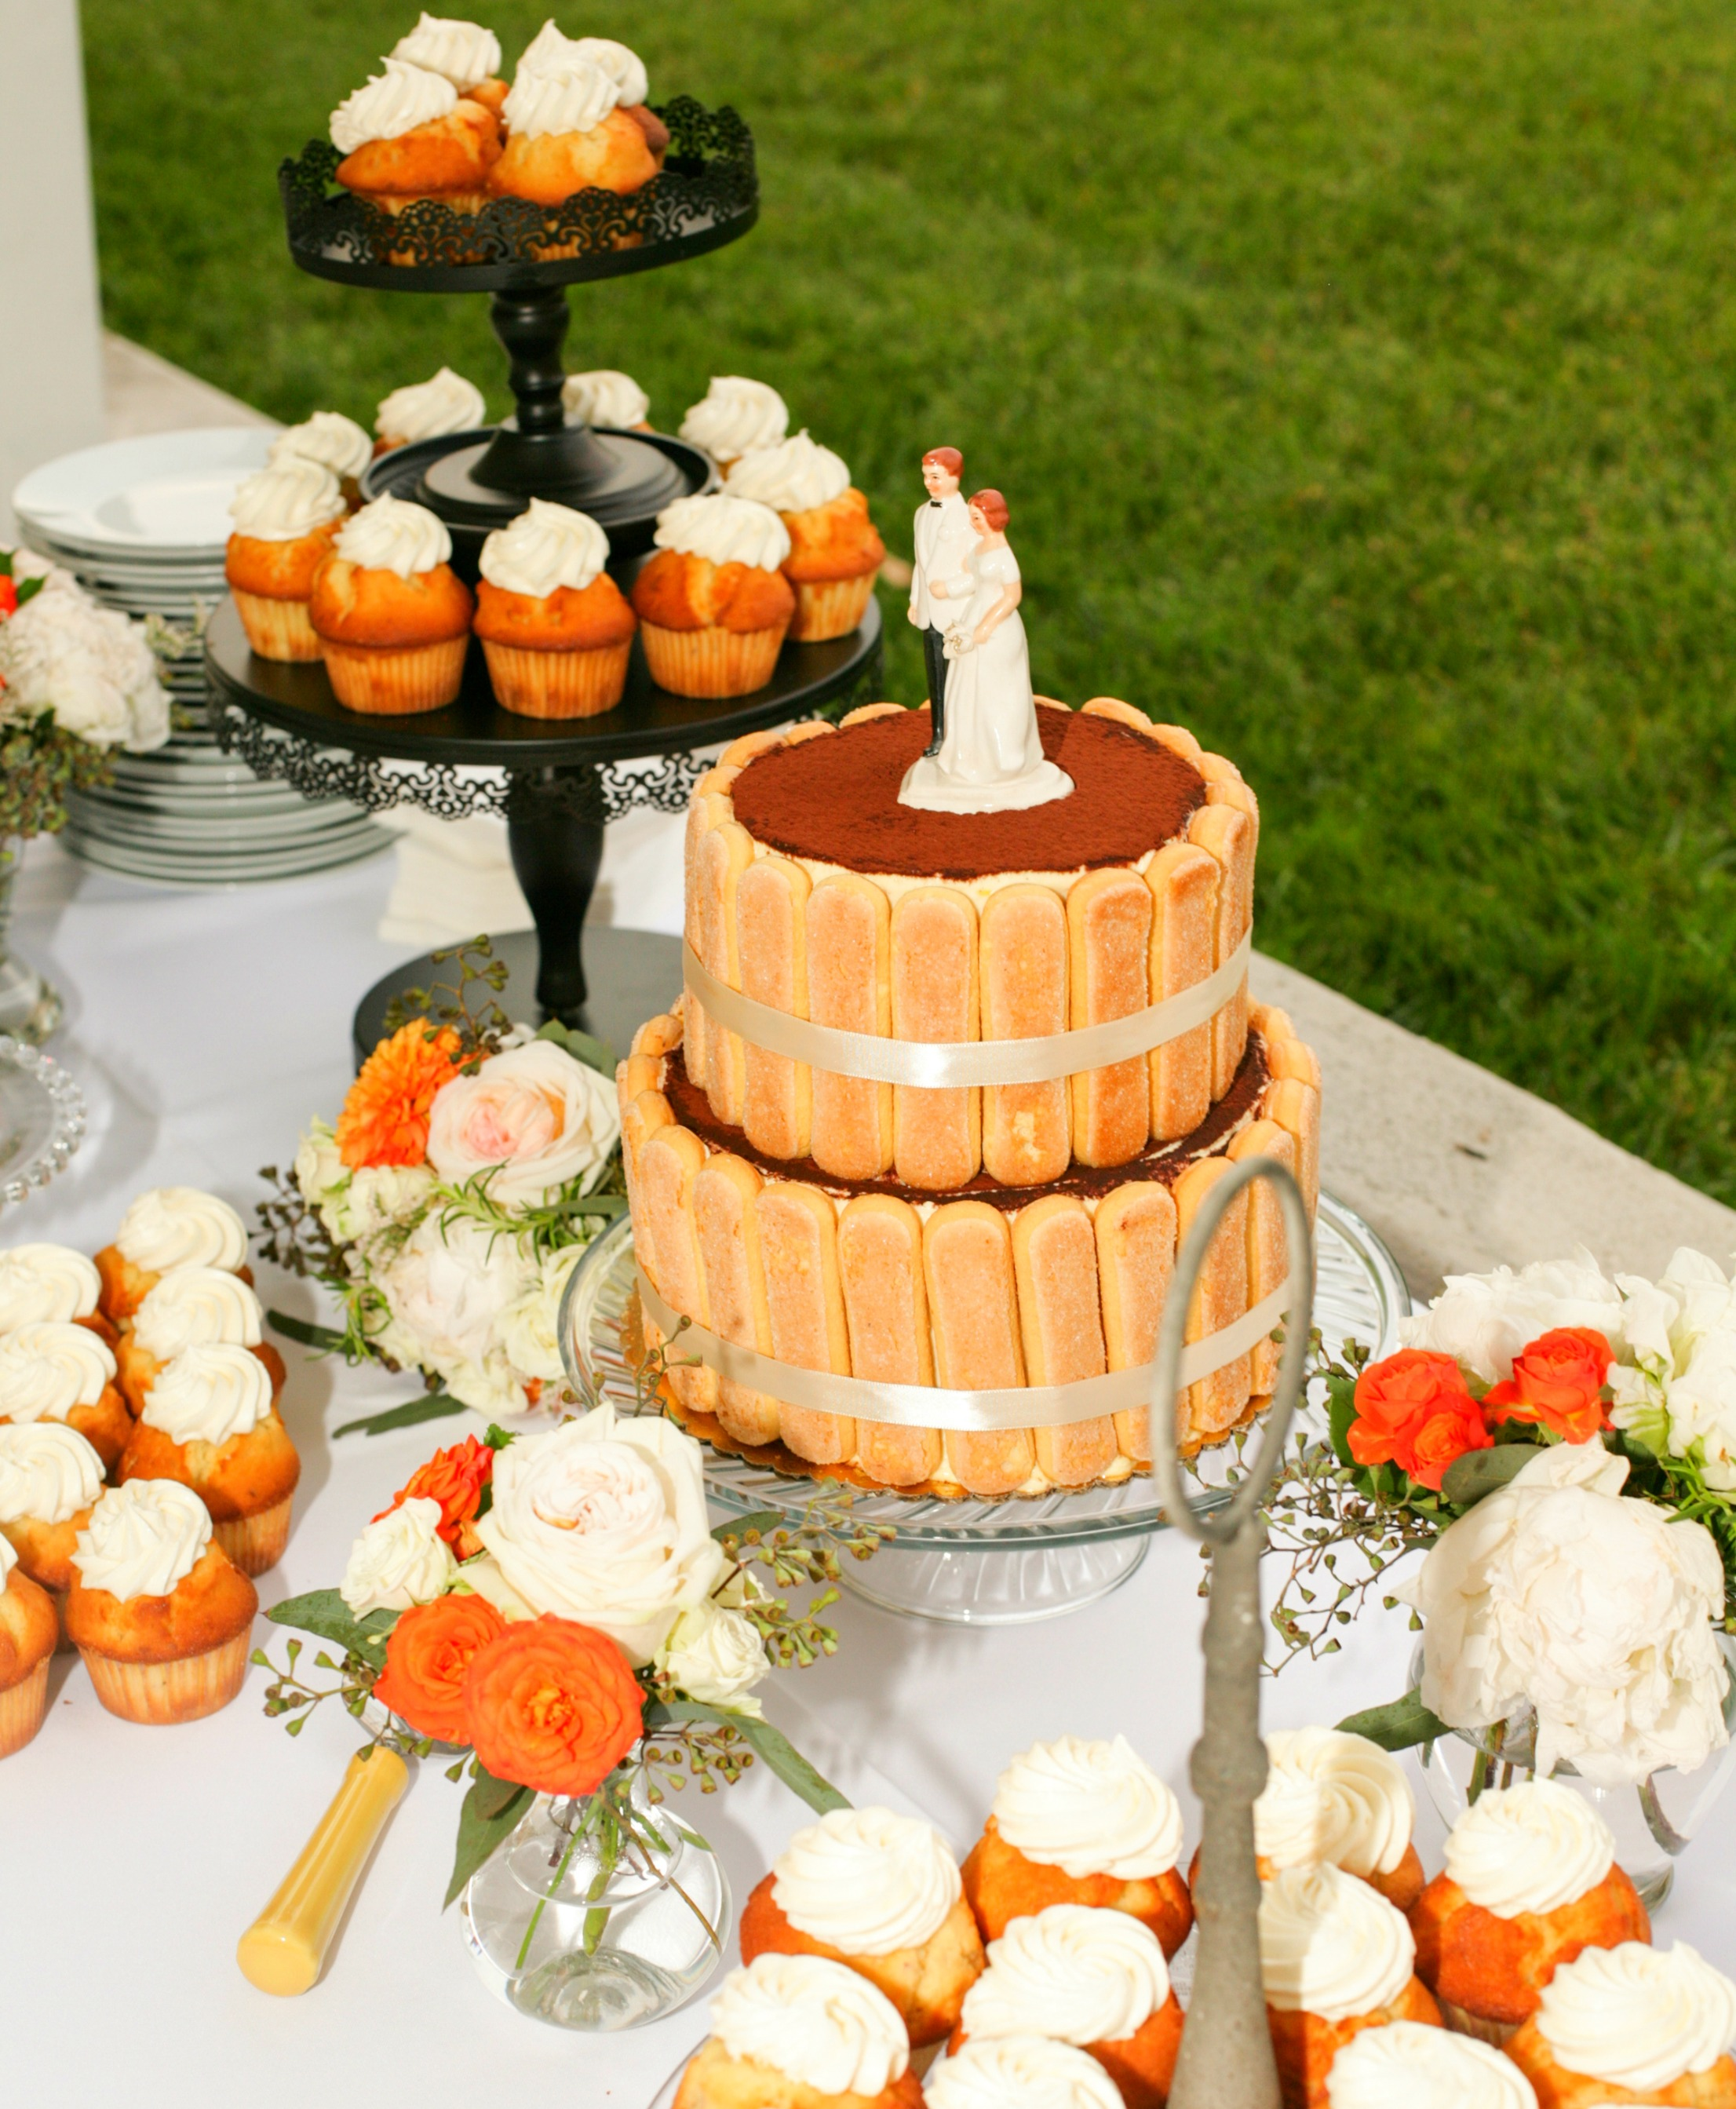 vinyard-wedding-cupcakes.jpg